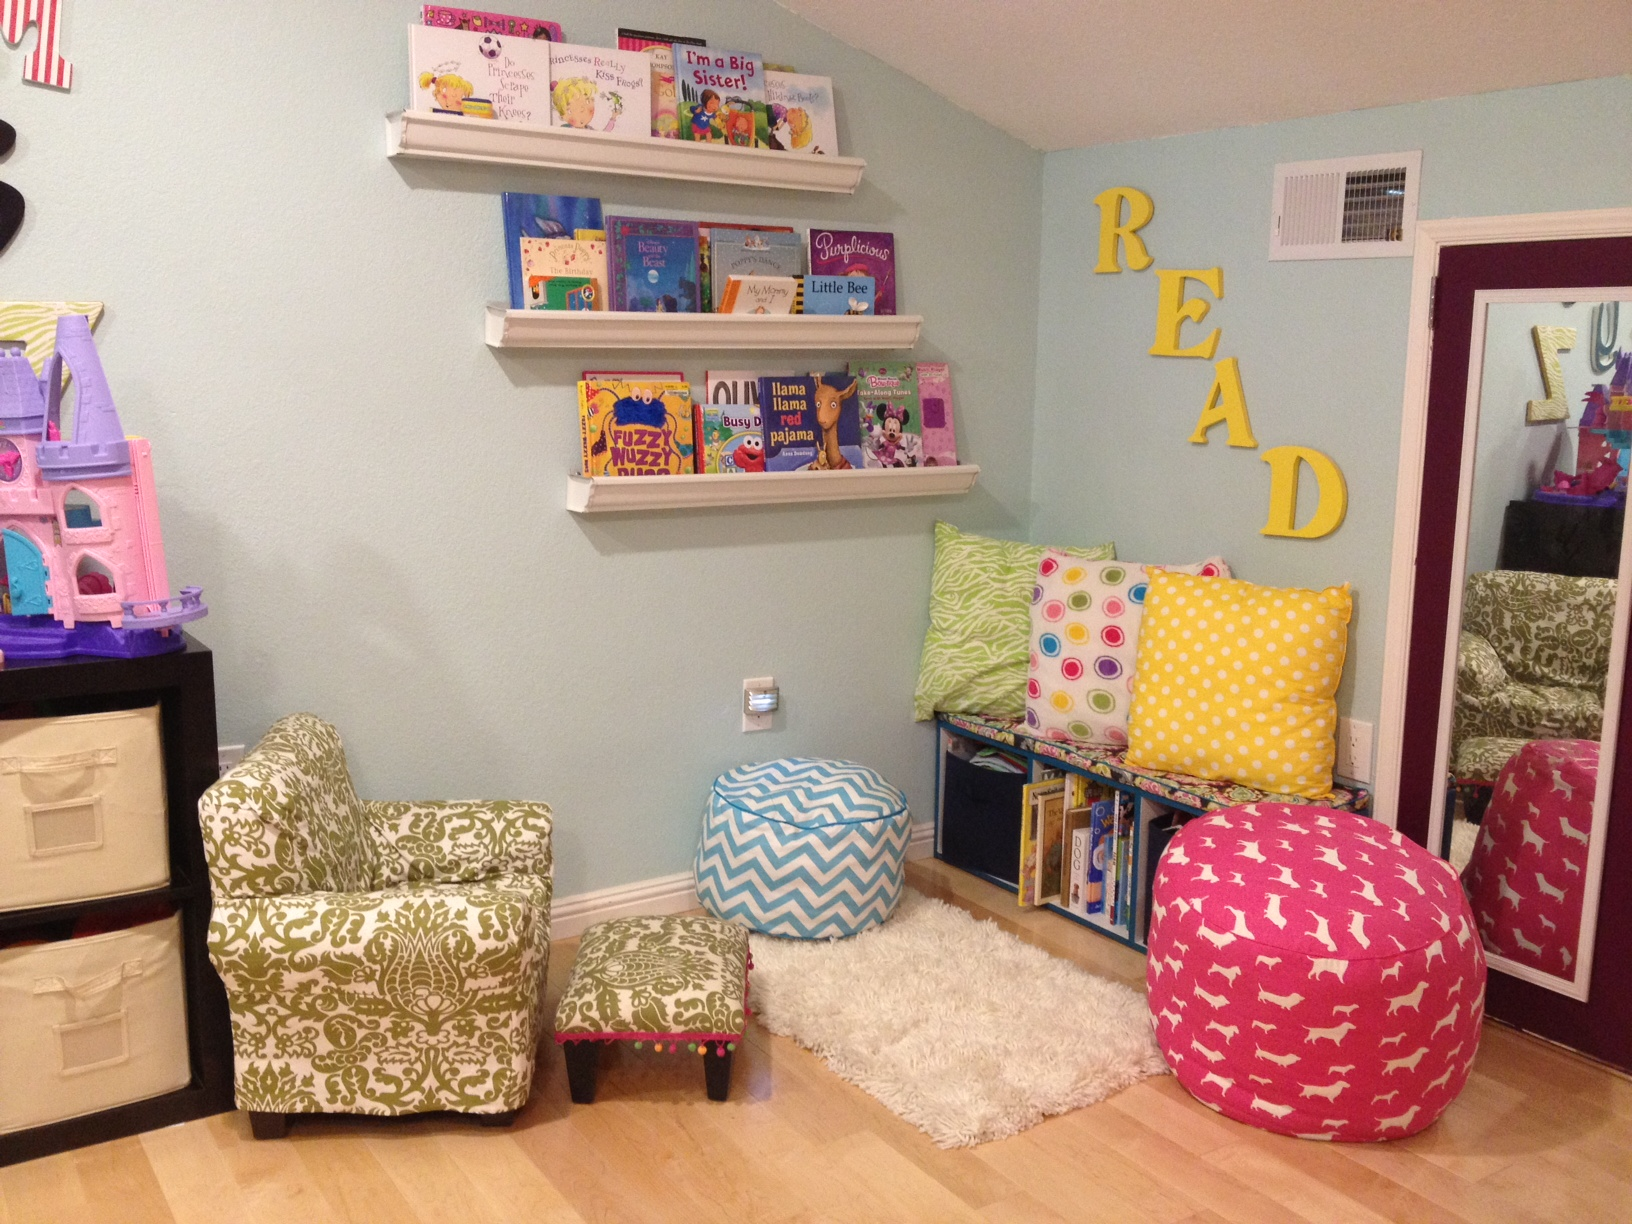 Kids reading area diy playroom decor pinsandpetals for Kids reading corner ideas